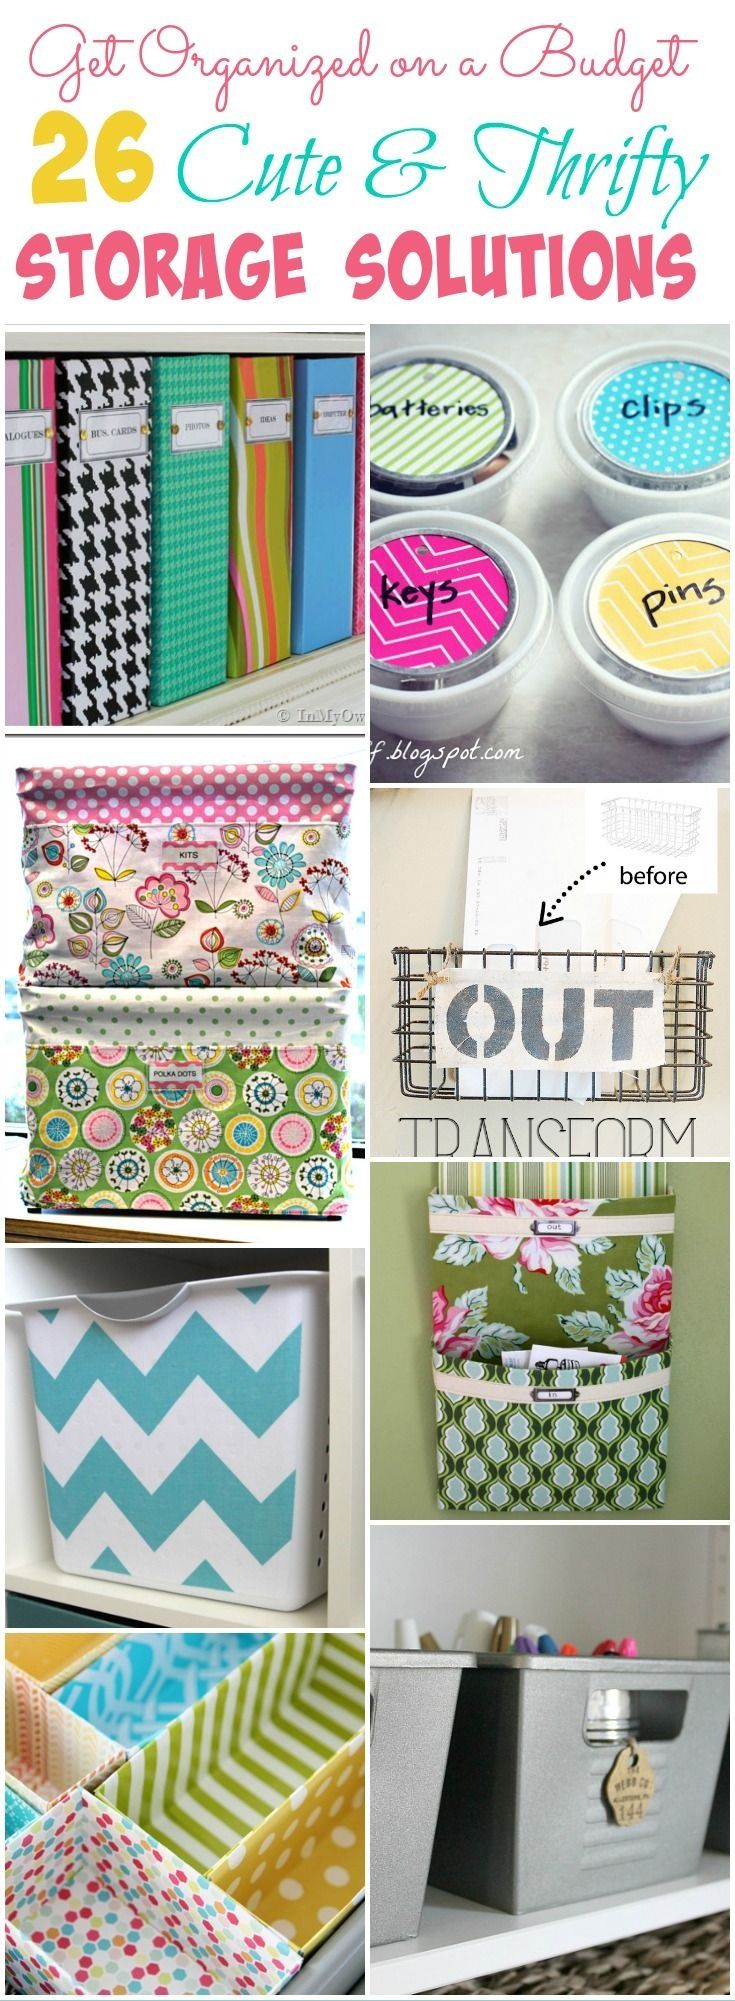 26 Cute and Thrifty DIY Storage Solutions | #Cute #Solutions #Storage #Thrifty